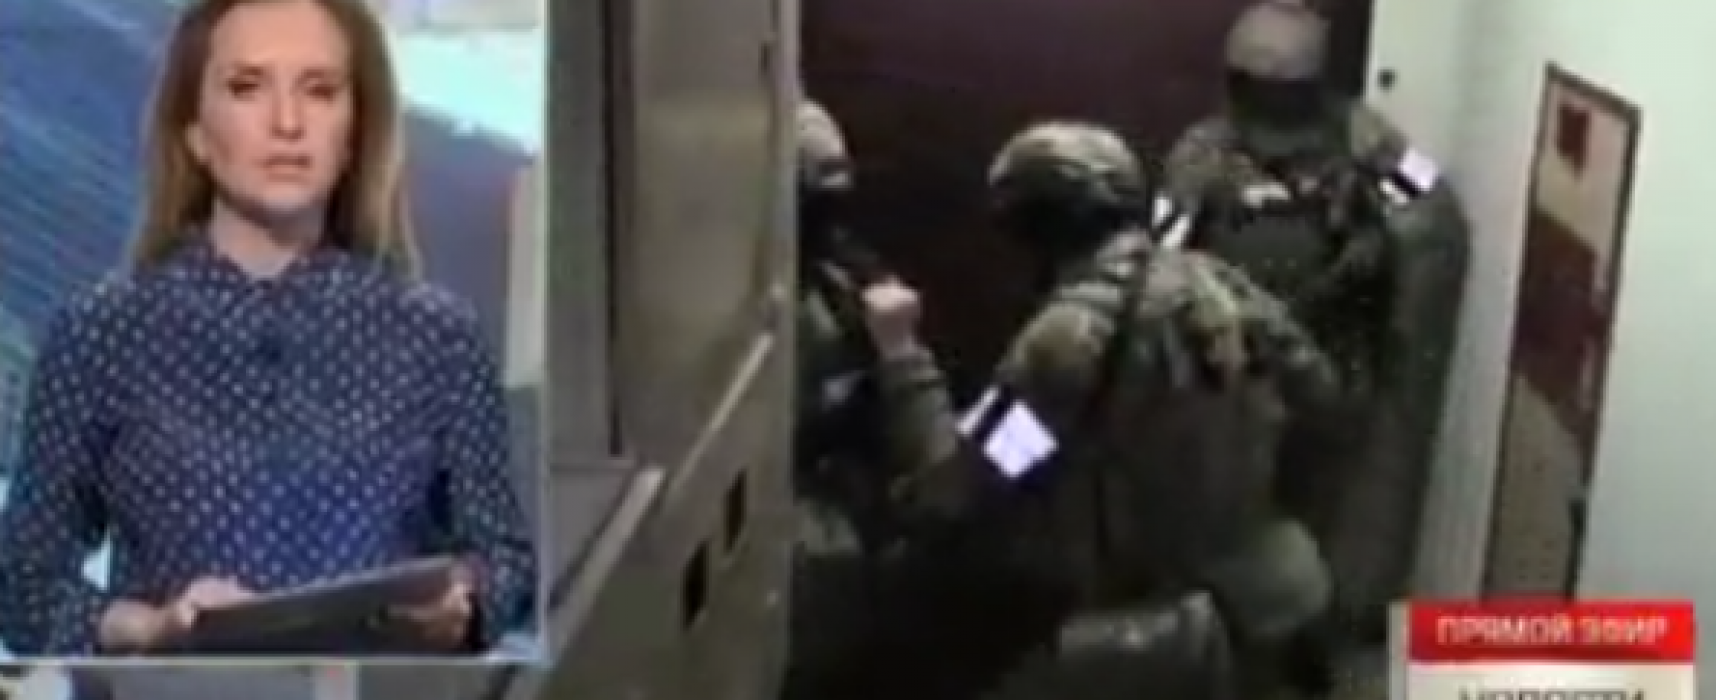 Russian TV shows fake 'anti-terror operation' to hide arrests of Crimean Tatar activists